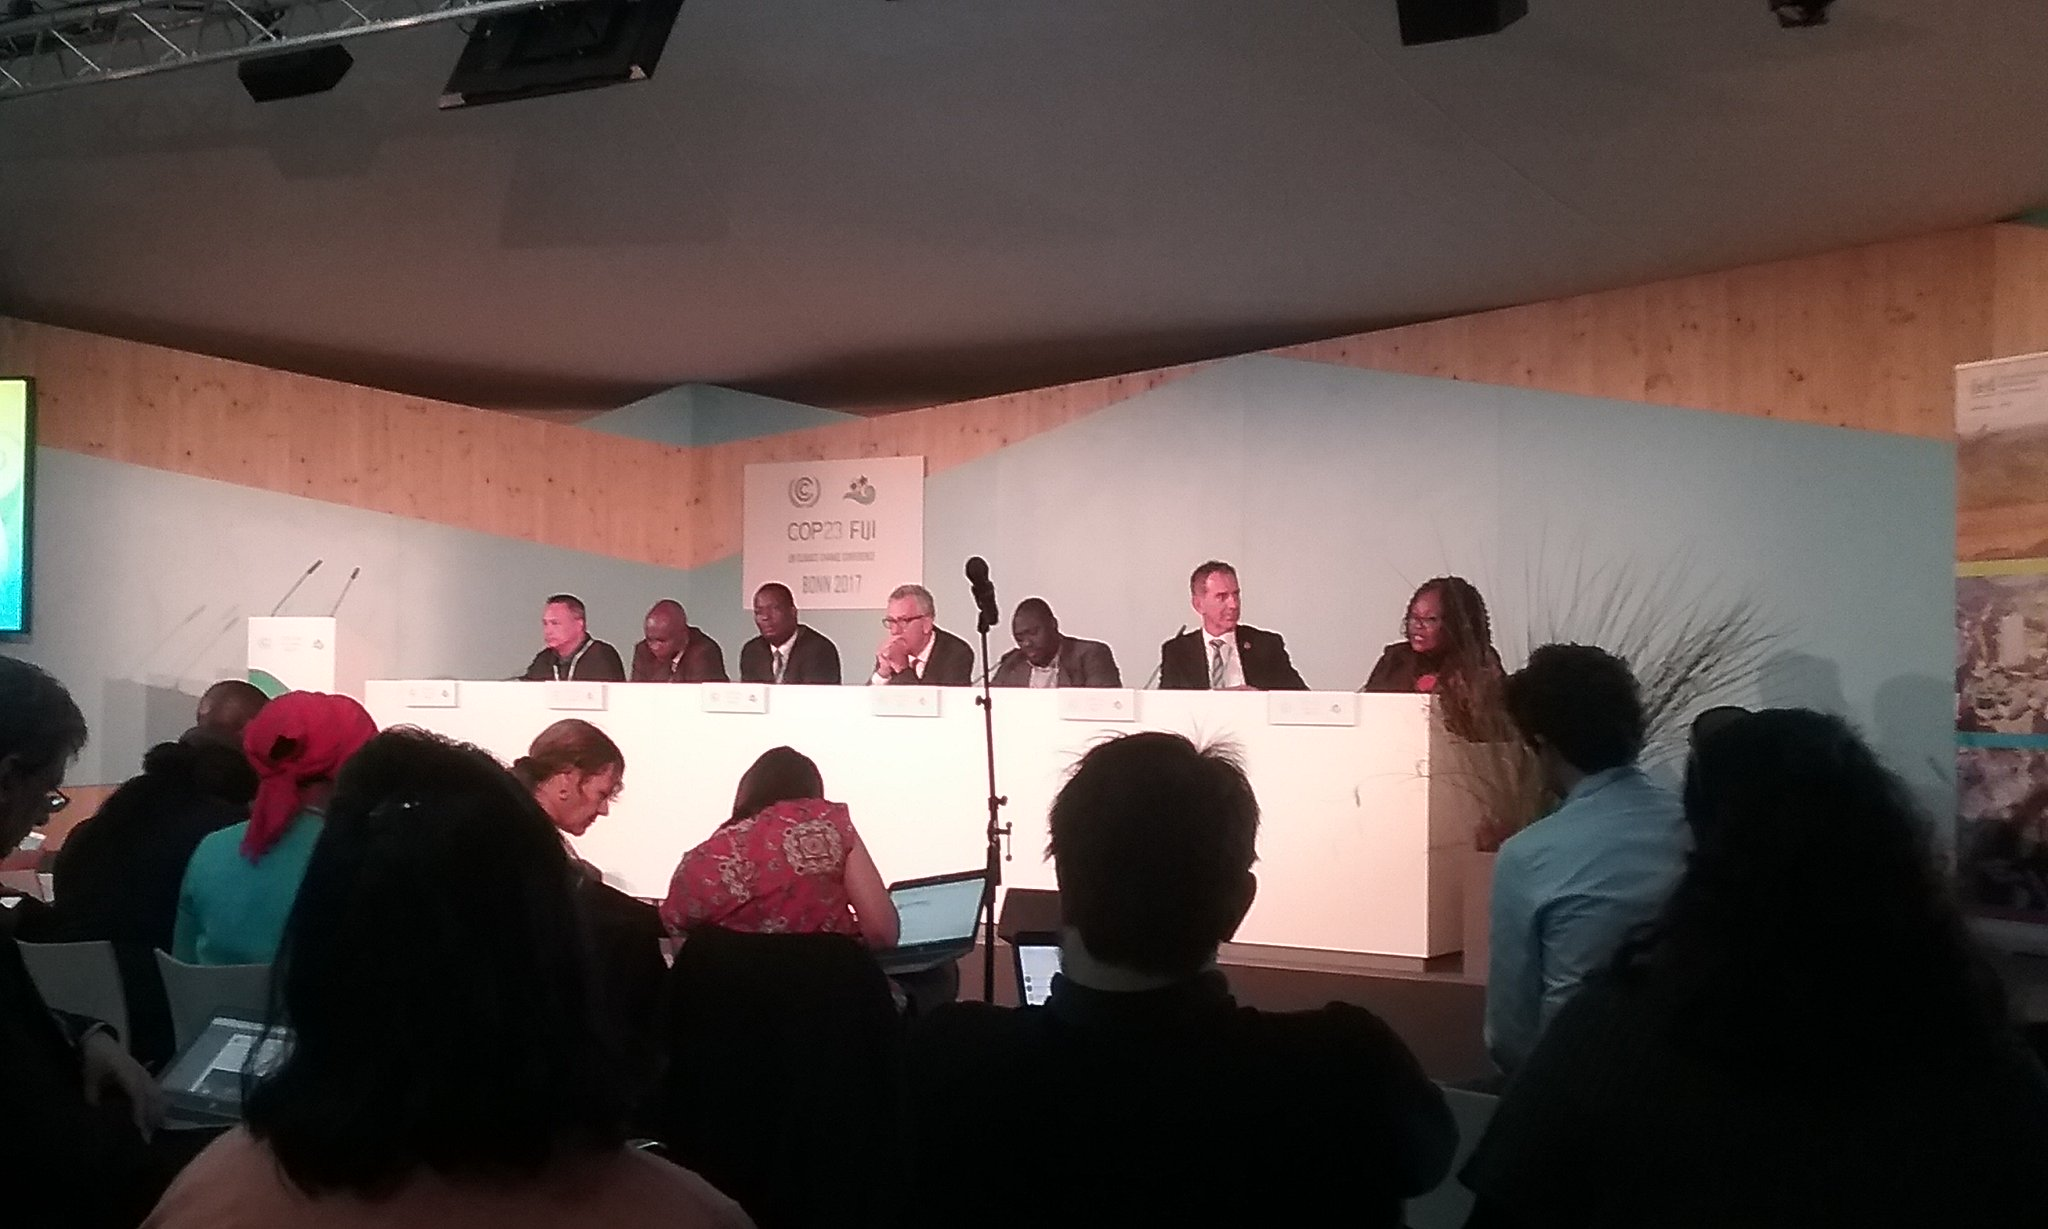 Tanzania would like a decentralized mechanism to channel climate funds directly into local communities #COP23 @COP23 @clareshakya @crawhall7 @IIED @ecioxford @SaleemulHuq https://t.co/bdxXr08uRc